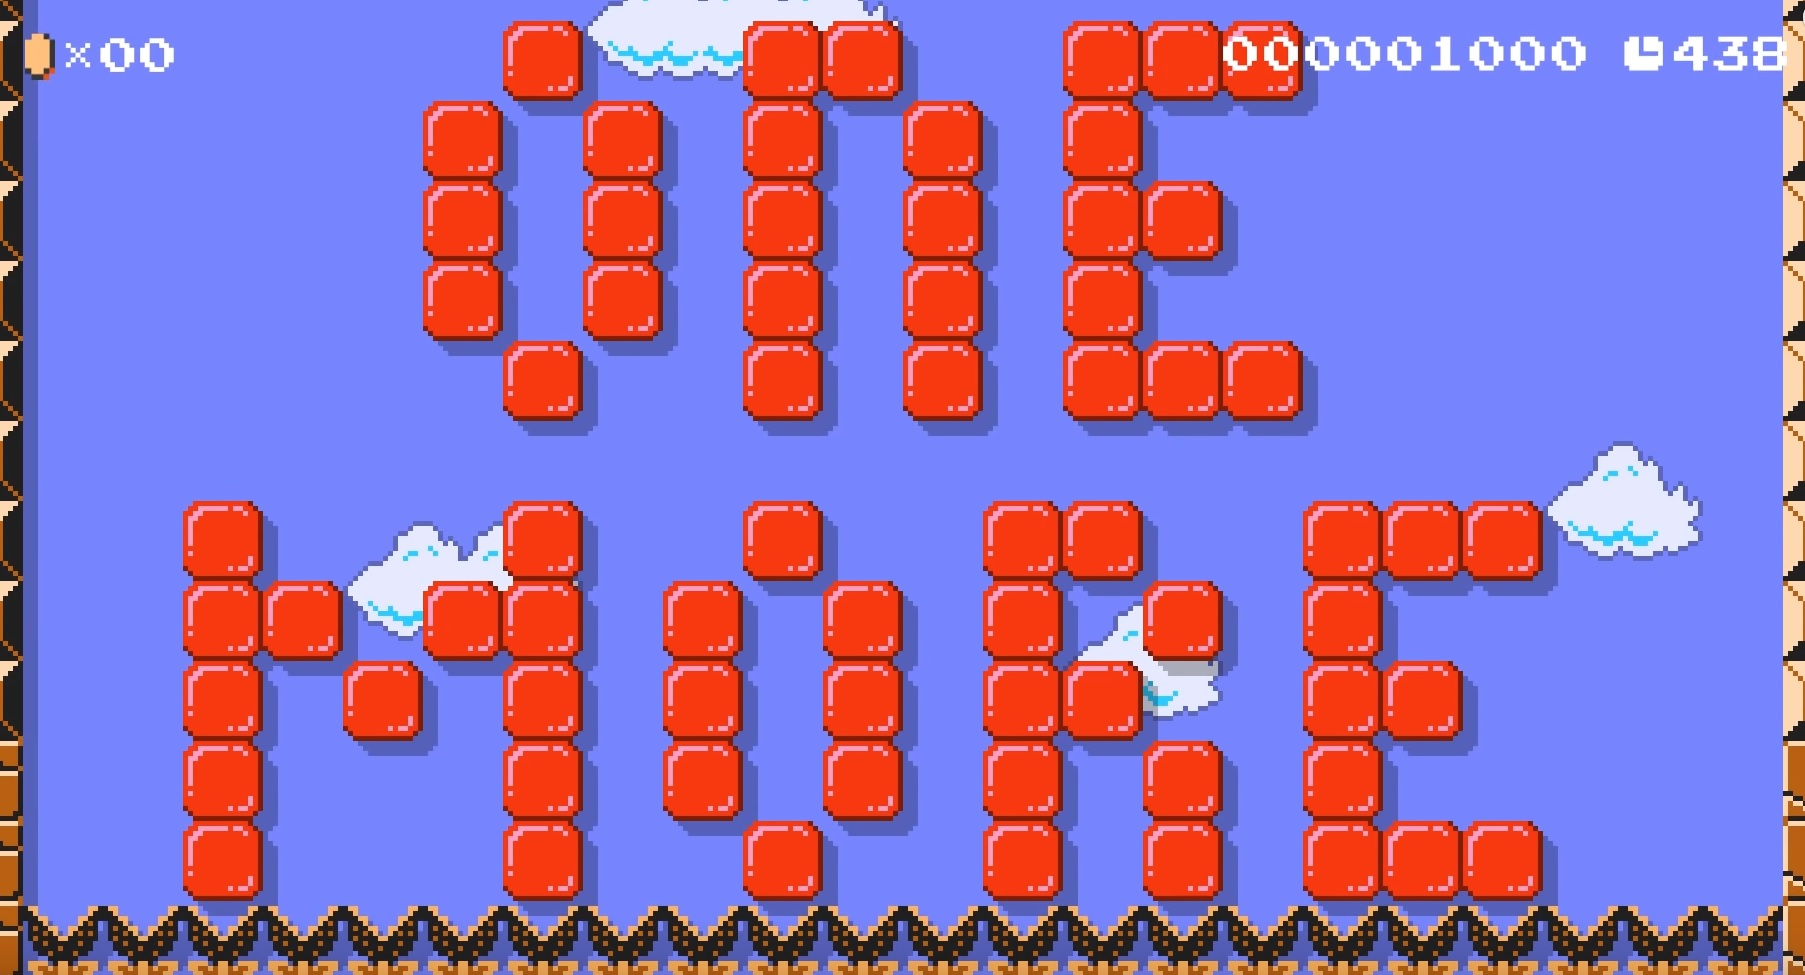 There's a Nintendo Direct level in Super Mario Maker 2 now, as the wait continues screenshot